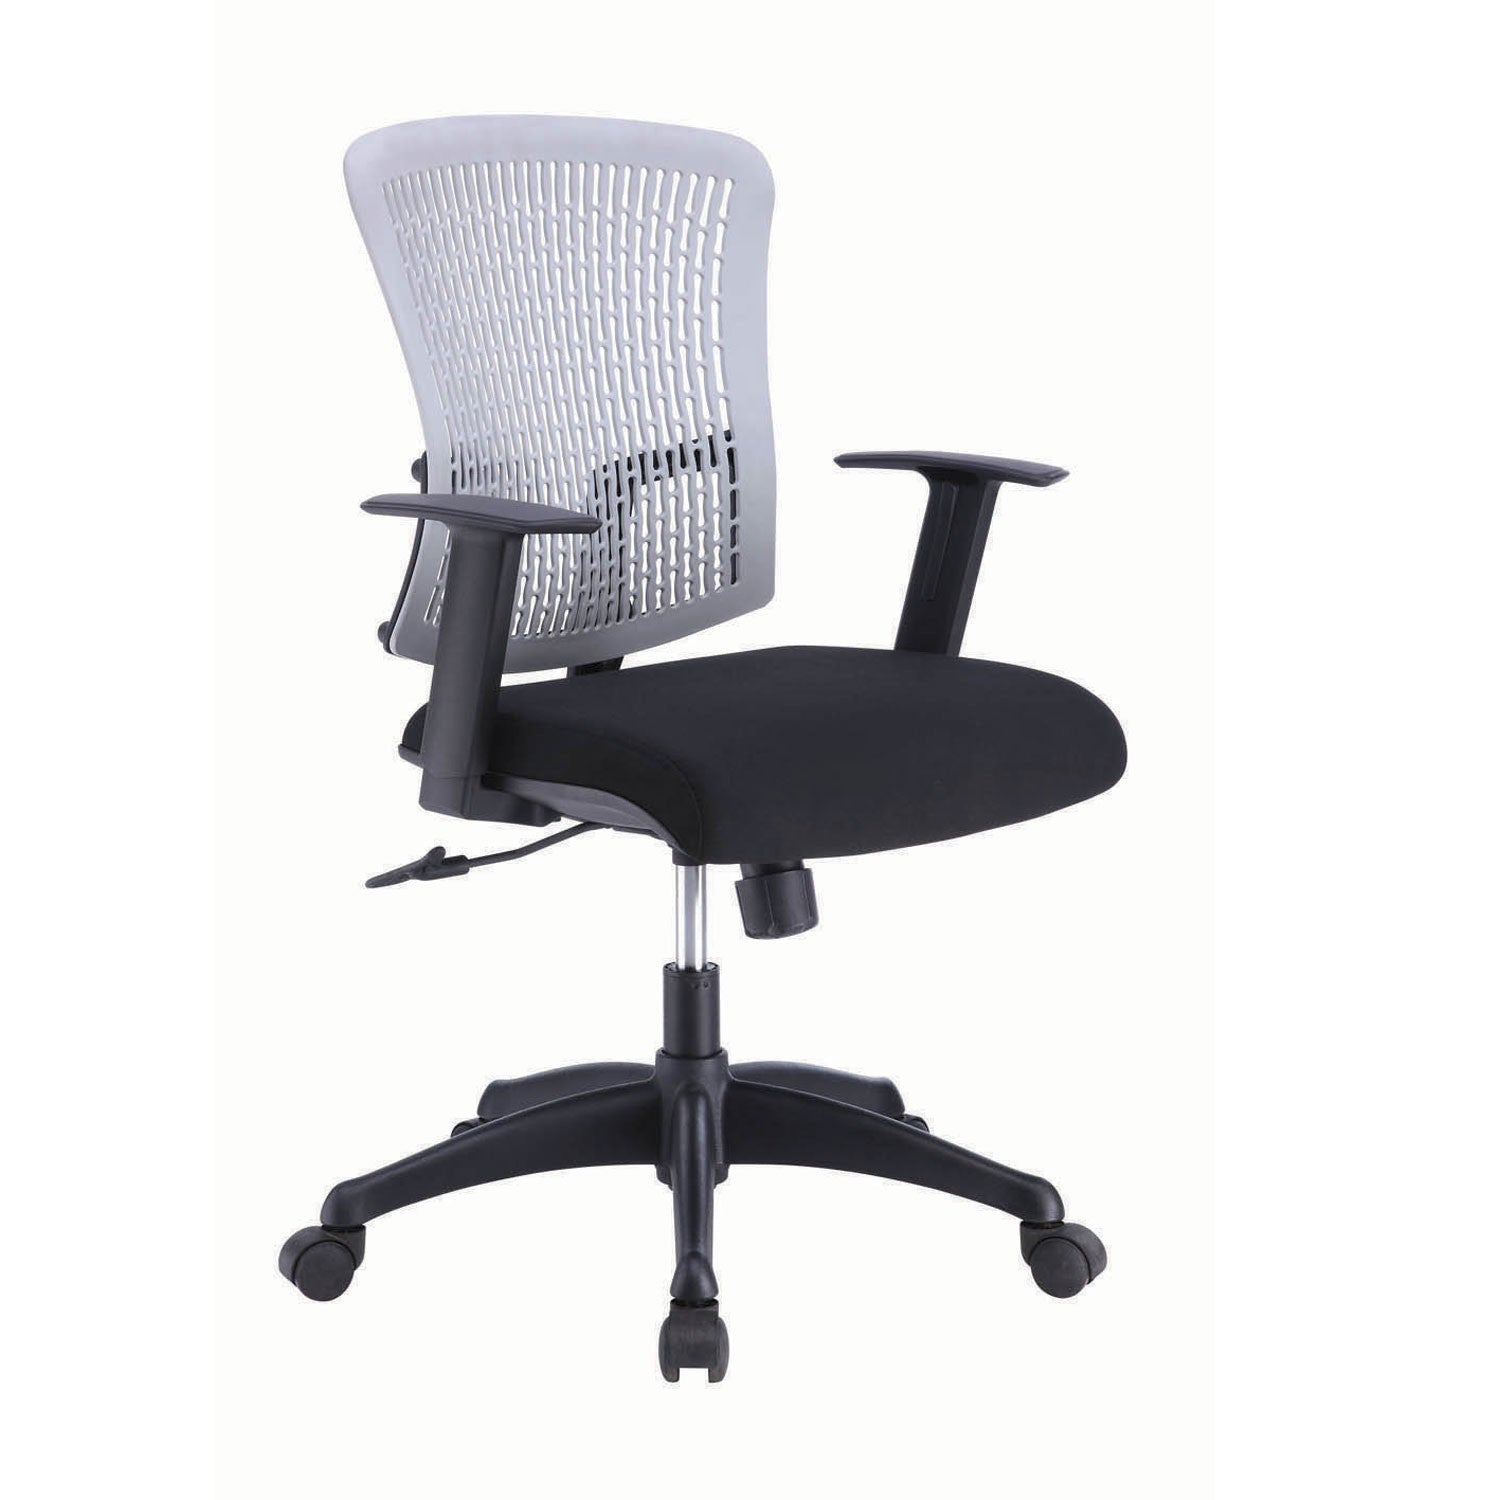 Series 1 R task chair GoStand Limited